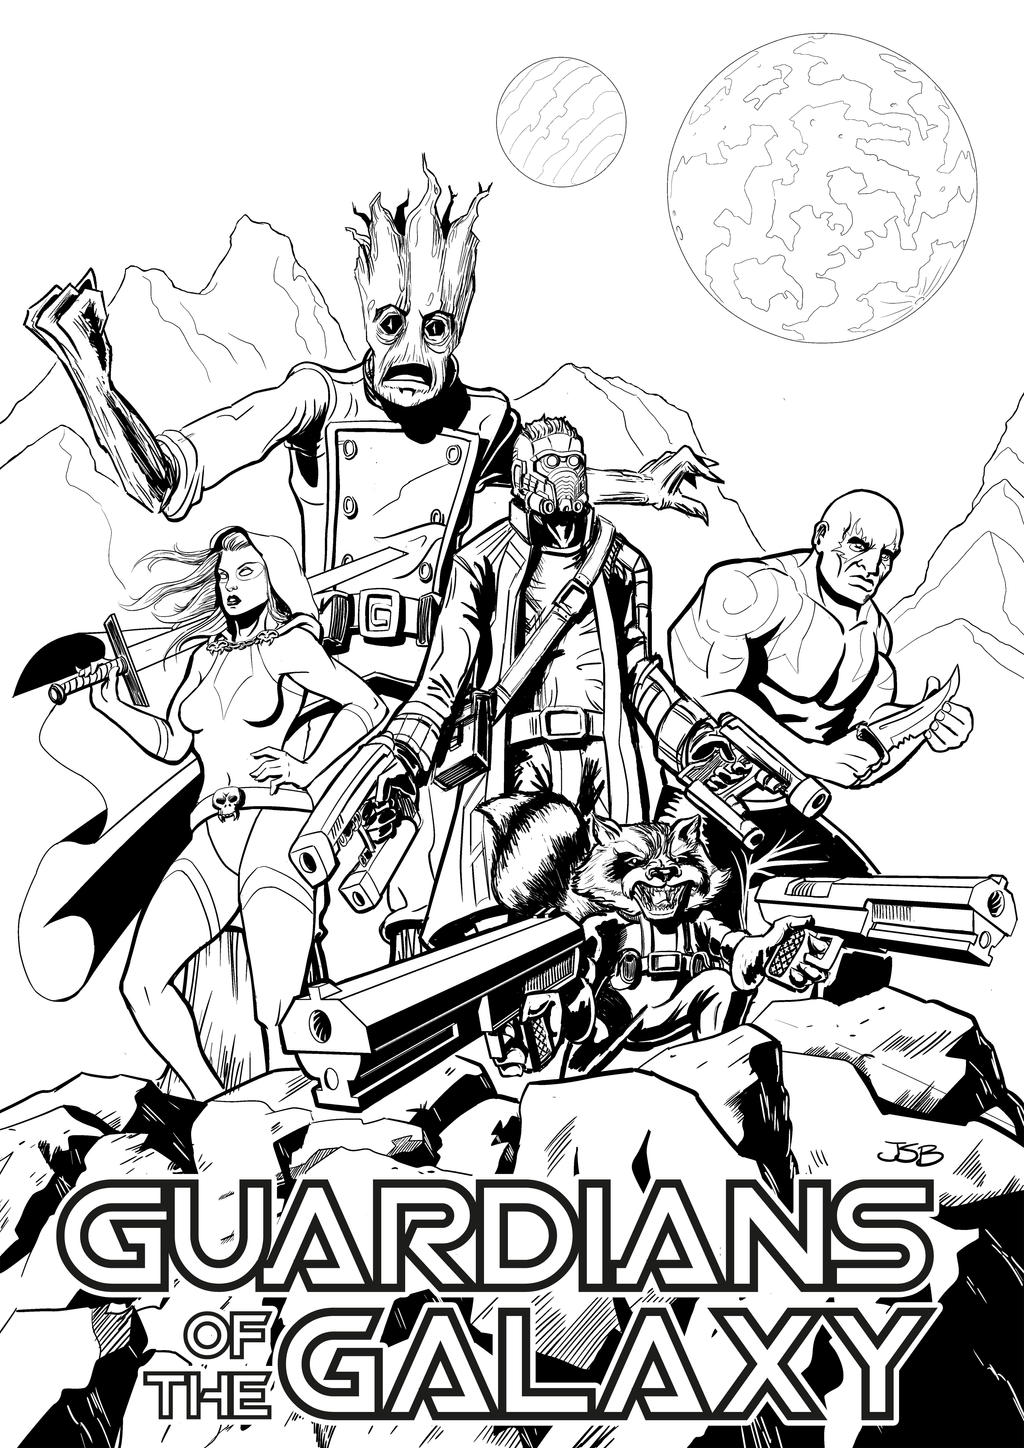 Printable coloring pages guardians of the galaxy - Colouring Pages Guardians Of The Galaxy Guardians Of The Galaxy By Sirandal On Deviantart